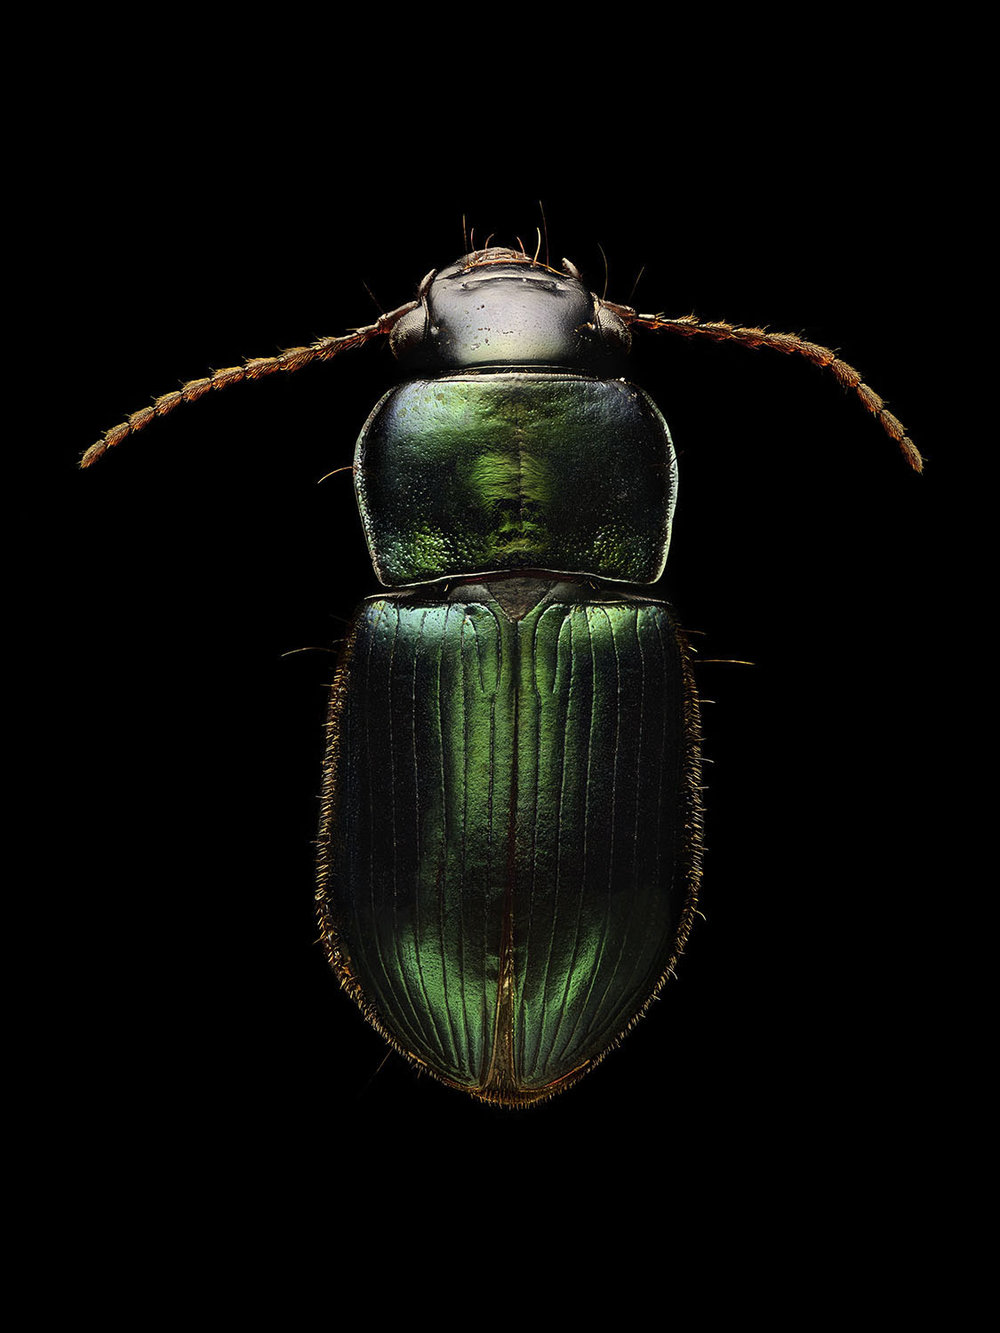 Ground Beetle_1170MB.jpg